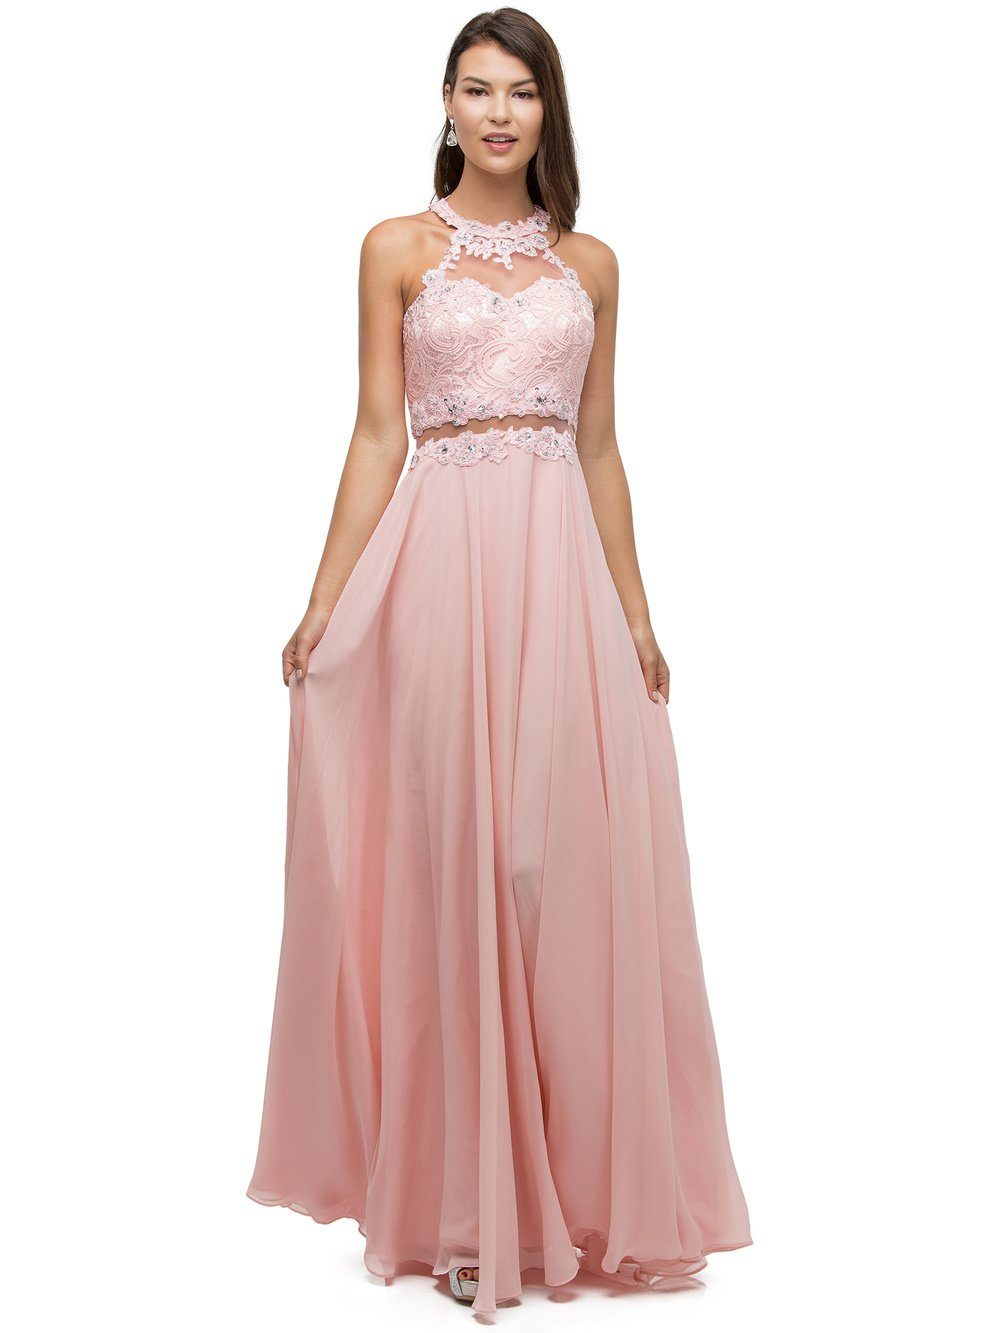 Lace mock Two-Piece cute Prom Dress DQ9548 – Simply Fab Dress